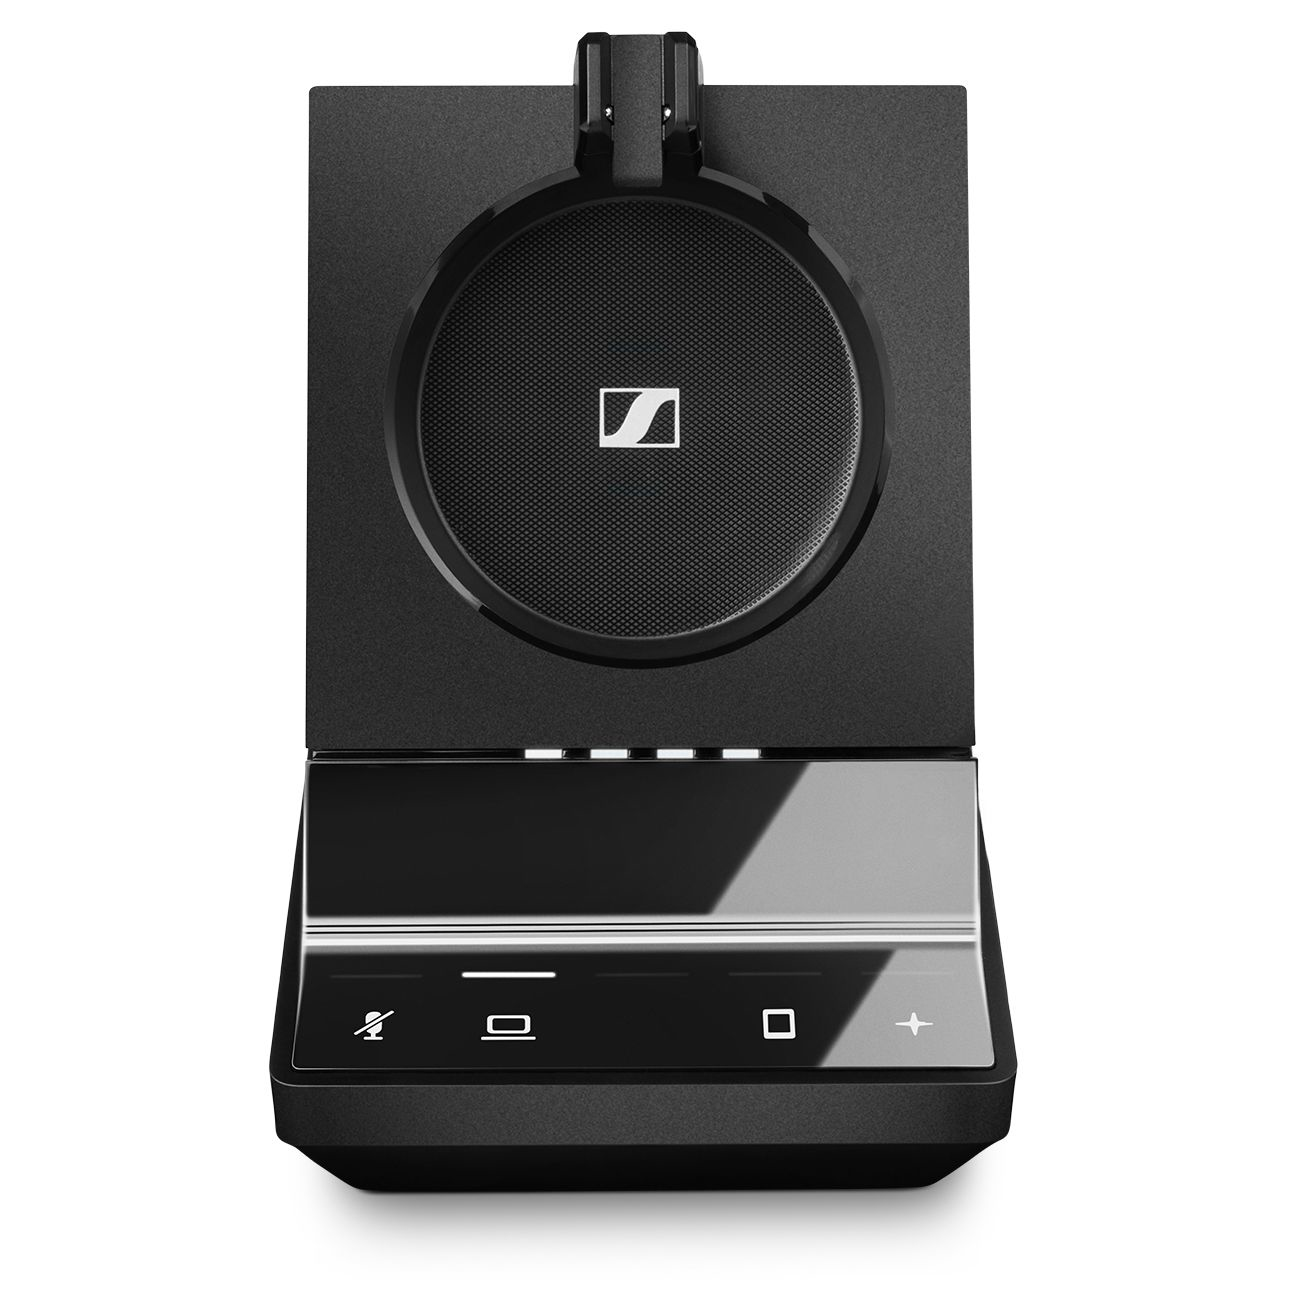 Sennheiser SDW 3 BS - UK DECT base station Black